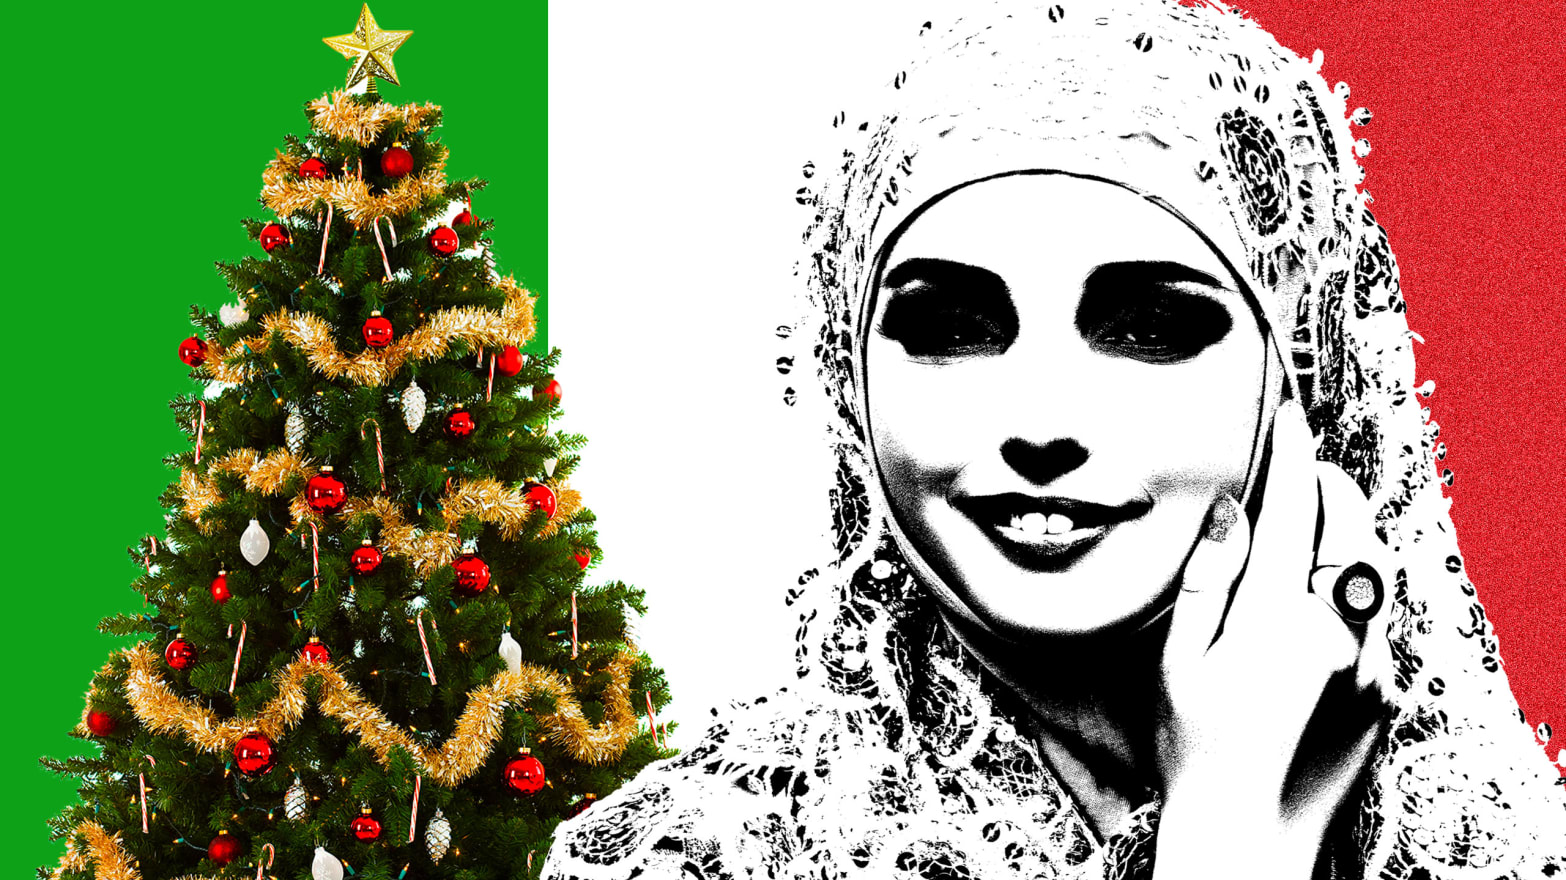 Italy S Muslims Celebrate Christmas To Calm Integration Fears